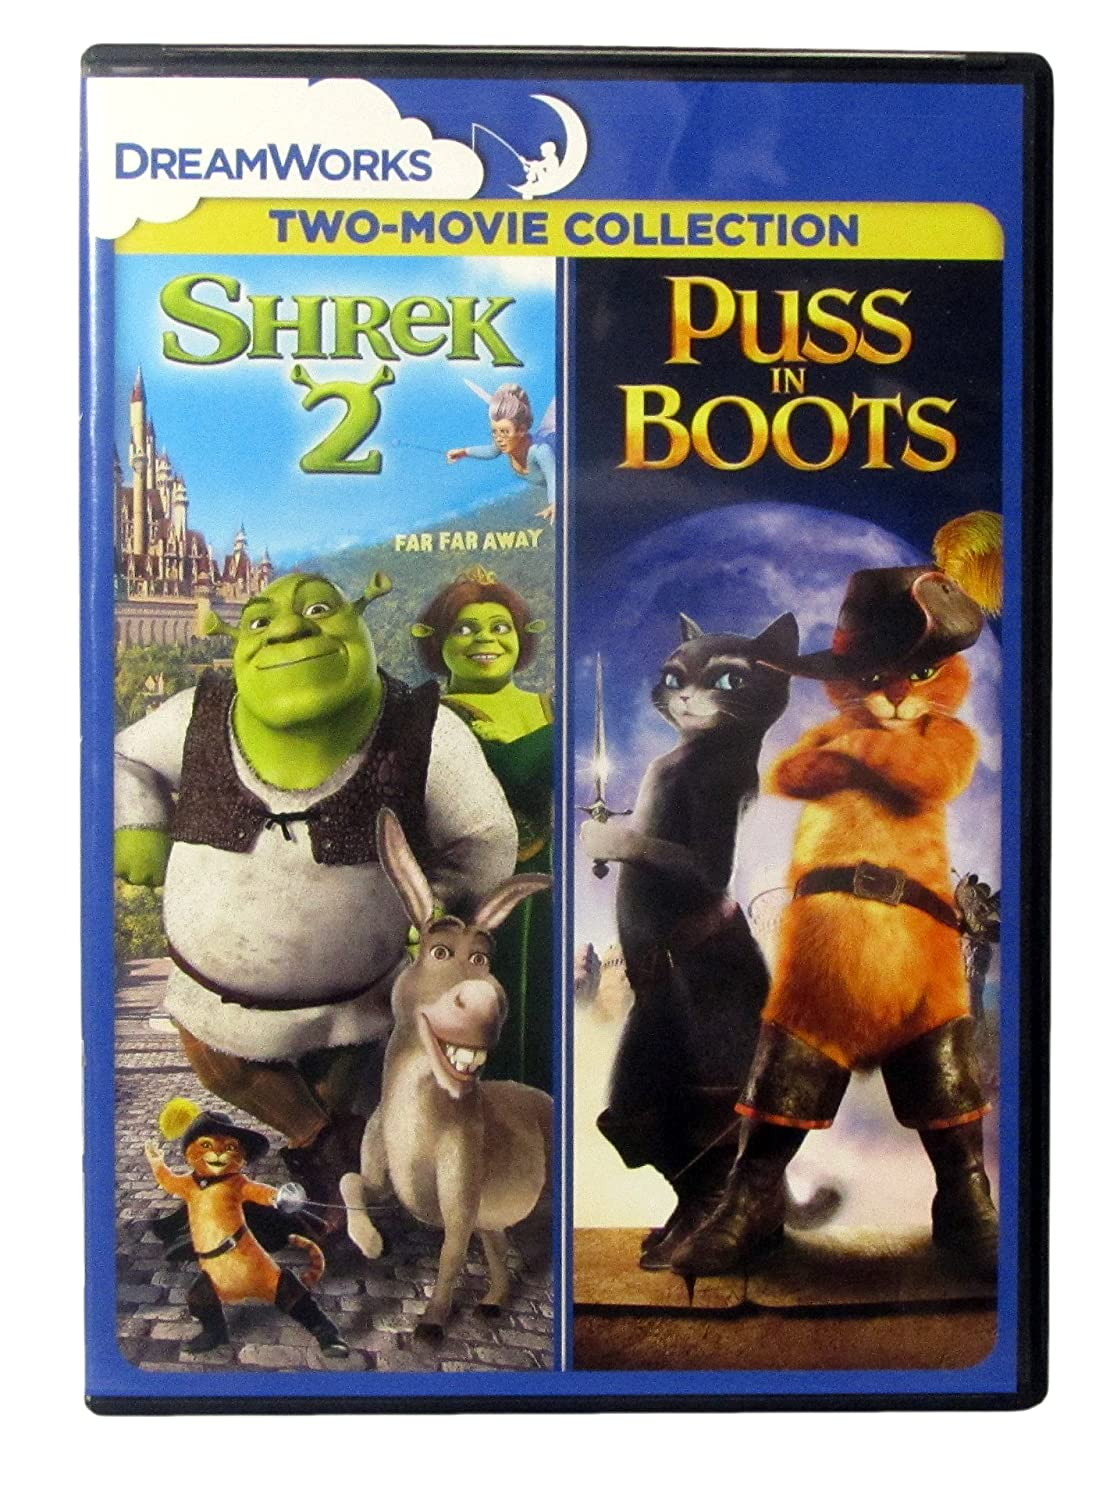 Amazon.com: Shrek 2 / Puss In Boots - Both DreamWorks Full Feature Animated  Films: Movies & TV